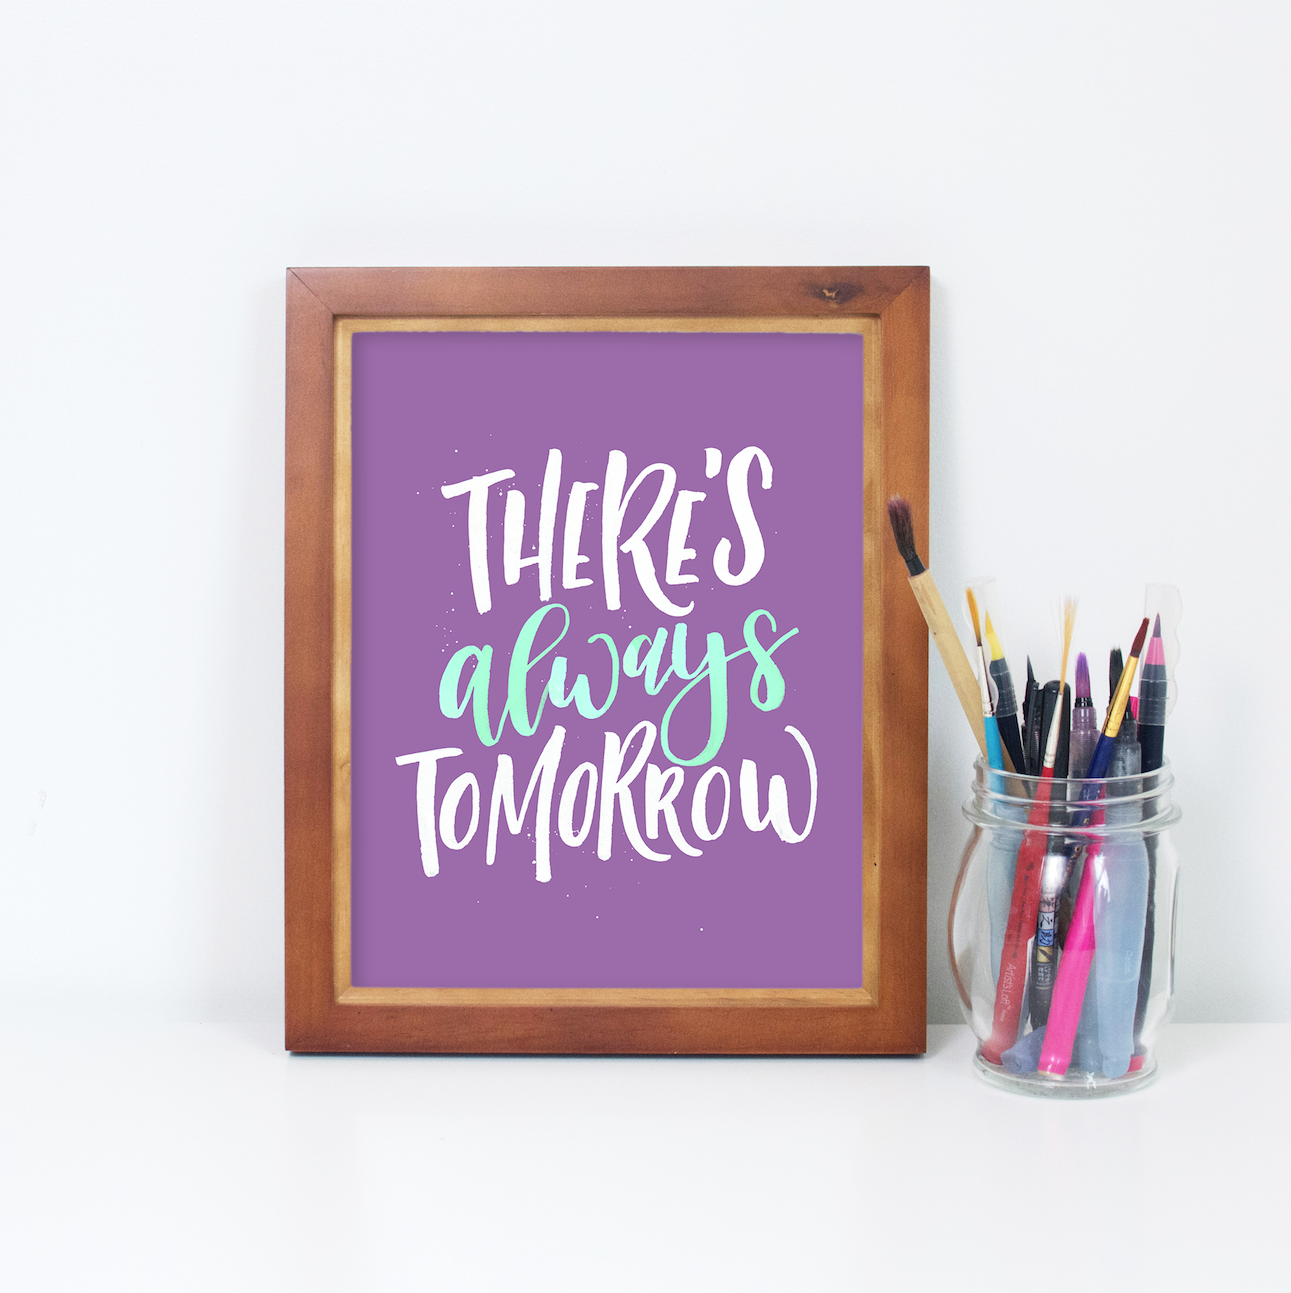 Mockup tutorial by twoeasels how to mockup your lettering inside a frame